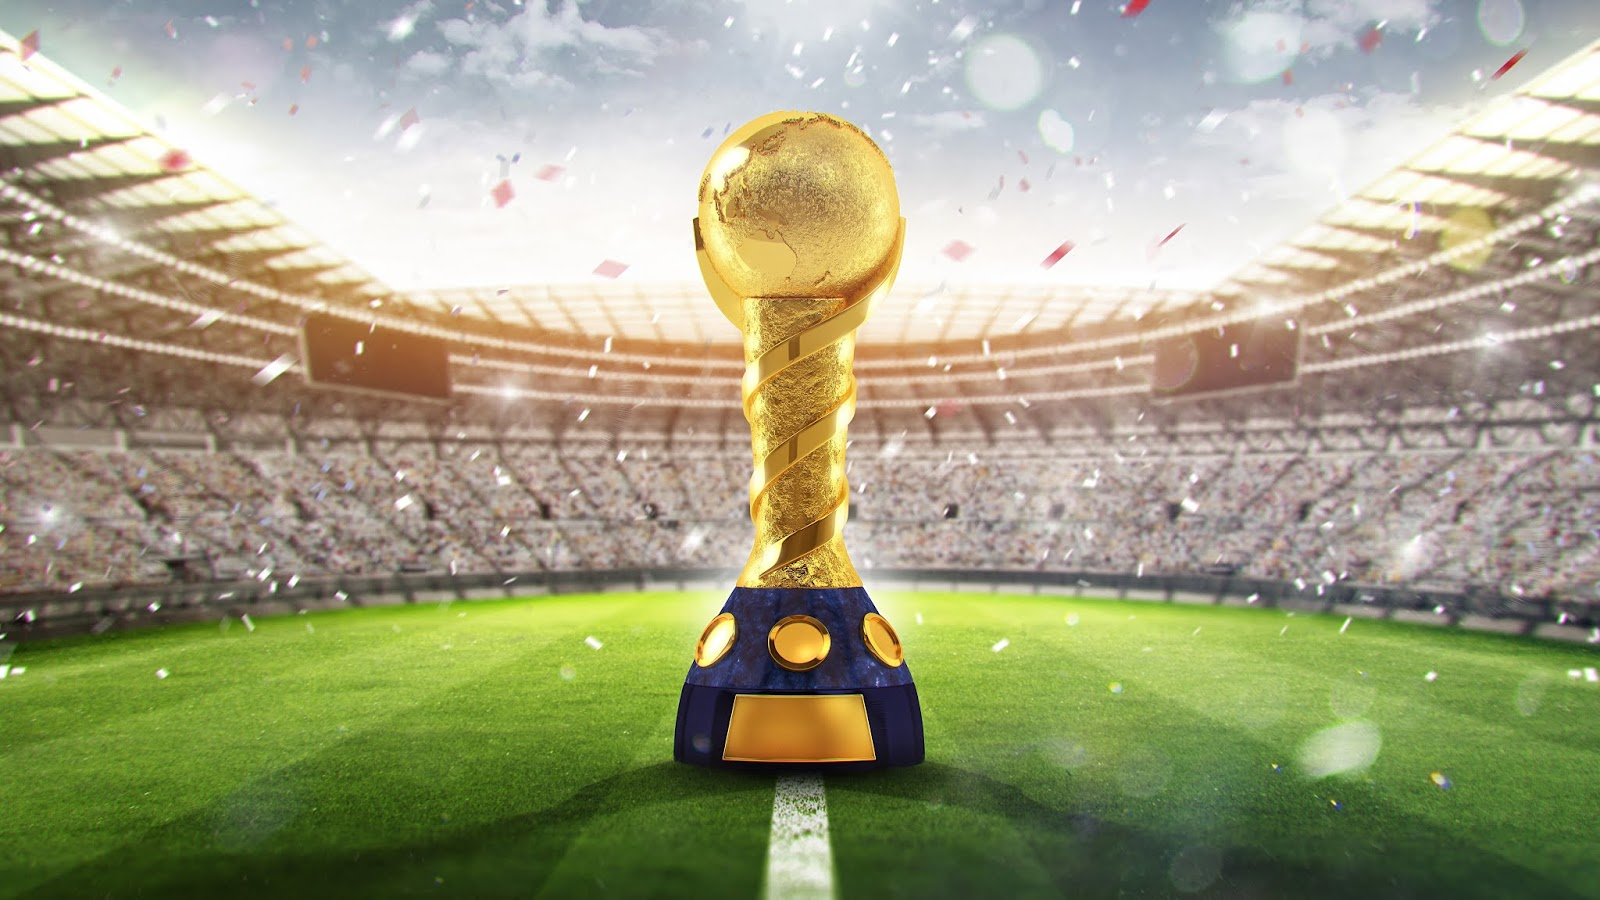 2018 FIFA World Cup, Russia, Golden trophy, Stadium, FIFA World Cup, 4K, Sports